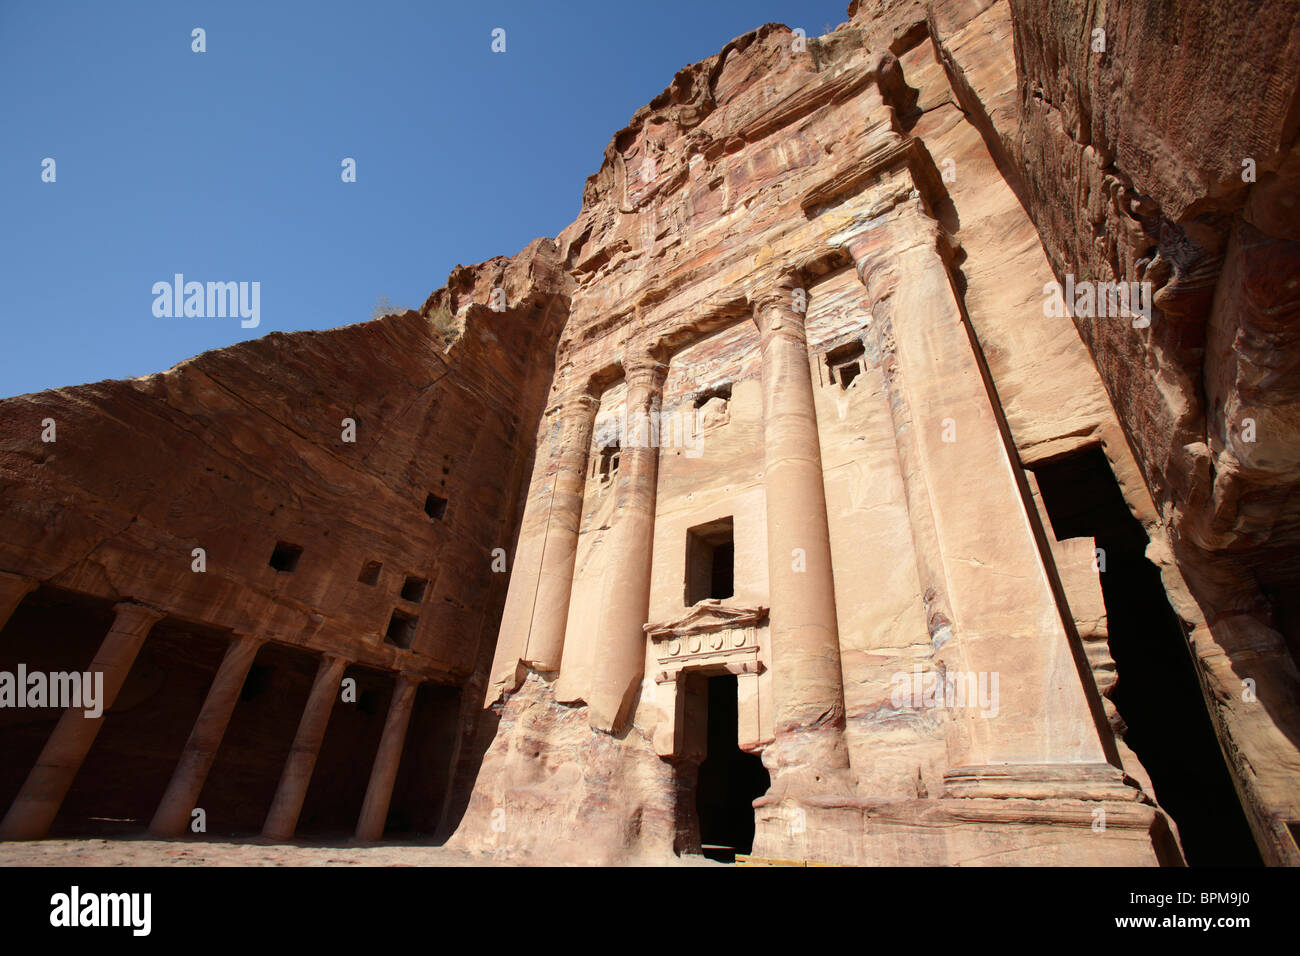 The Urn tomb, one of the royal tombs in Petra, Jordan Stock Photo